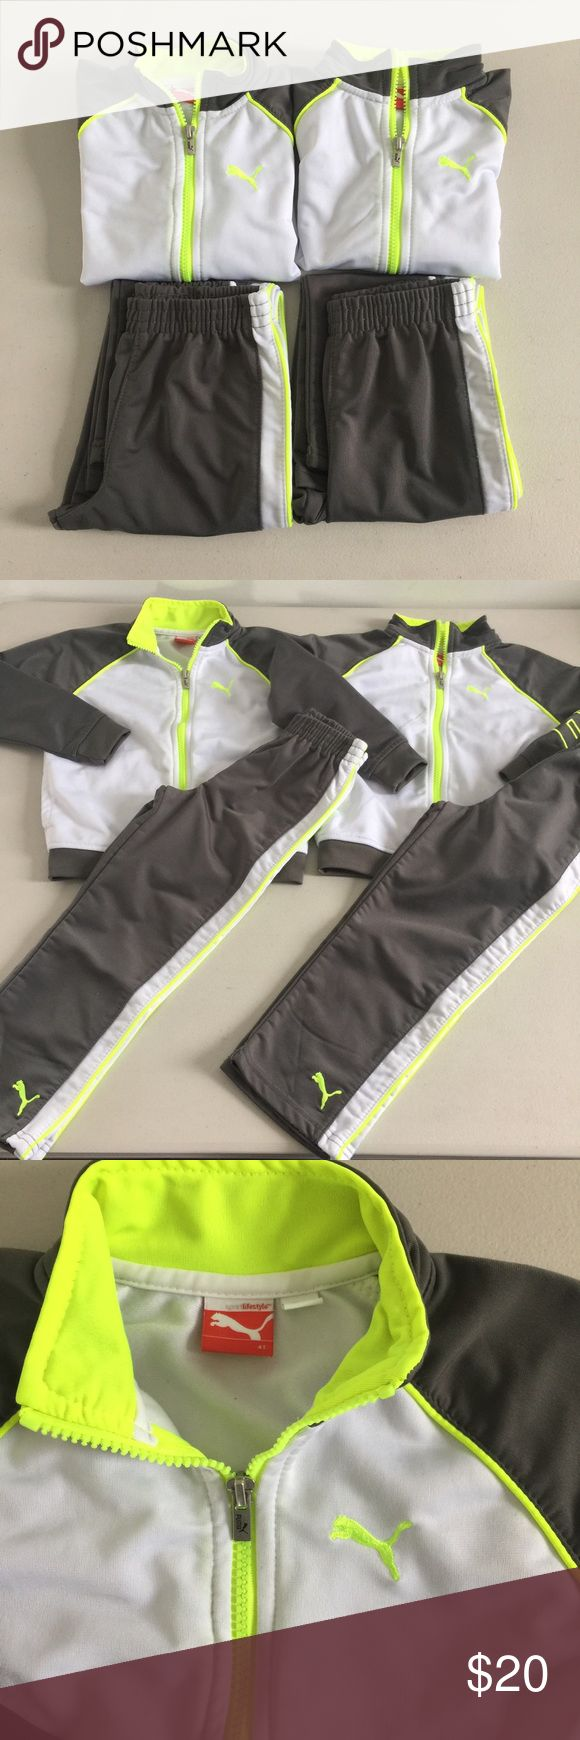 PUMA twins boys active wear sports tracksuit In LikeNew condition. Priced for 1, bundle discount for both. Tiniest pilling if u can even call it that. Jackets can be worn separately. Puma Matching Sets